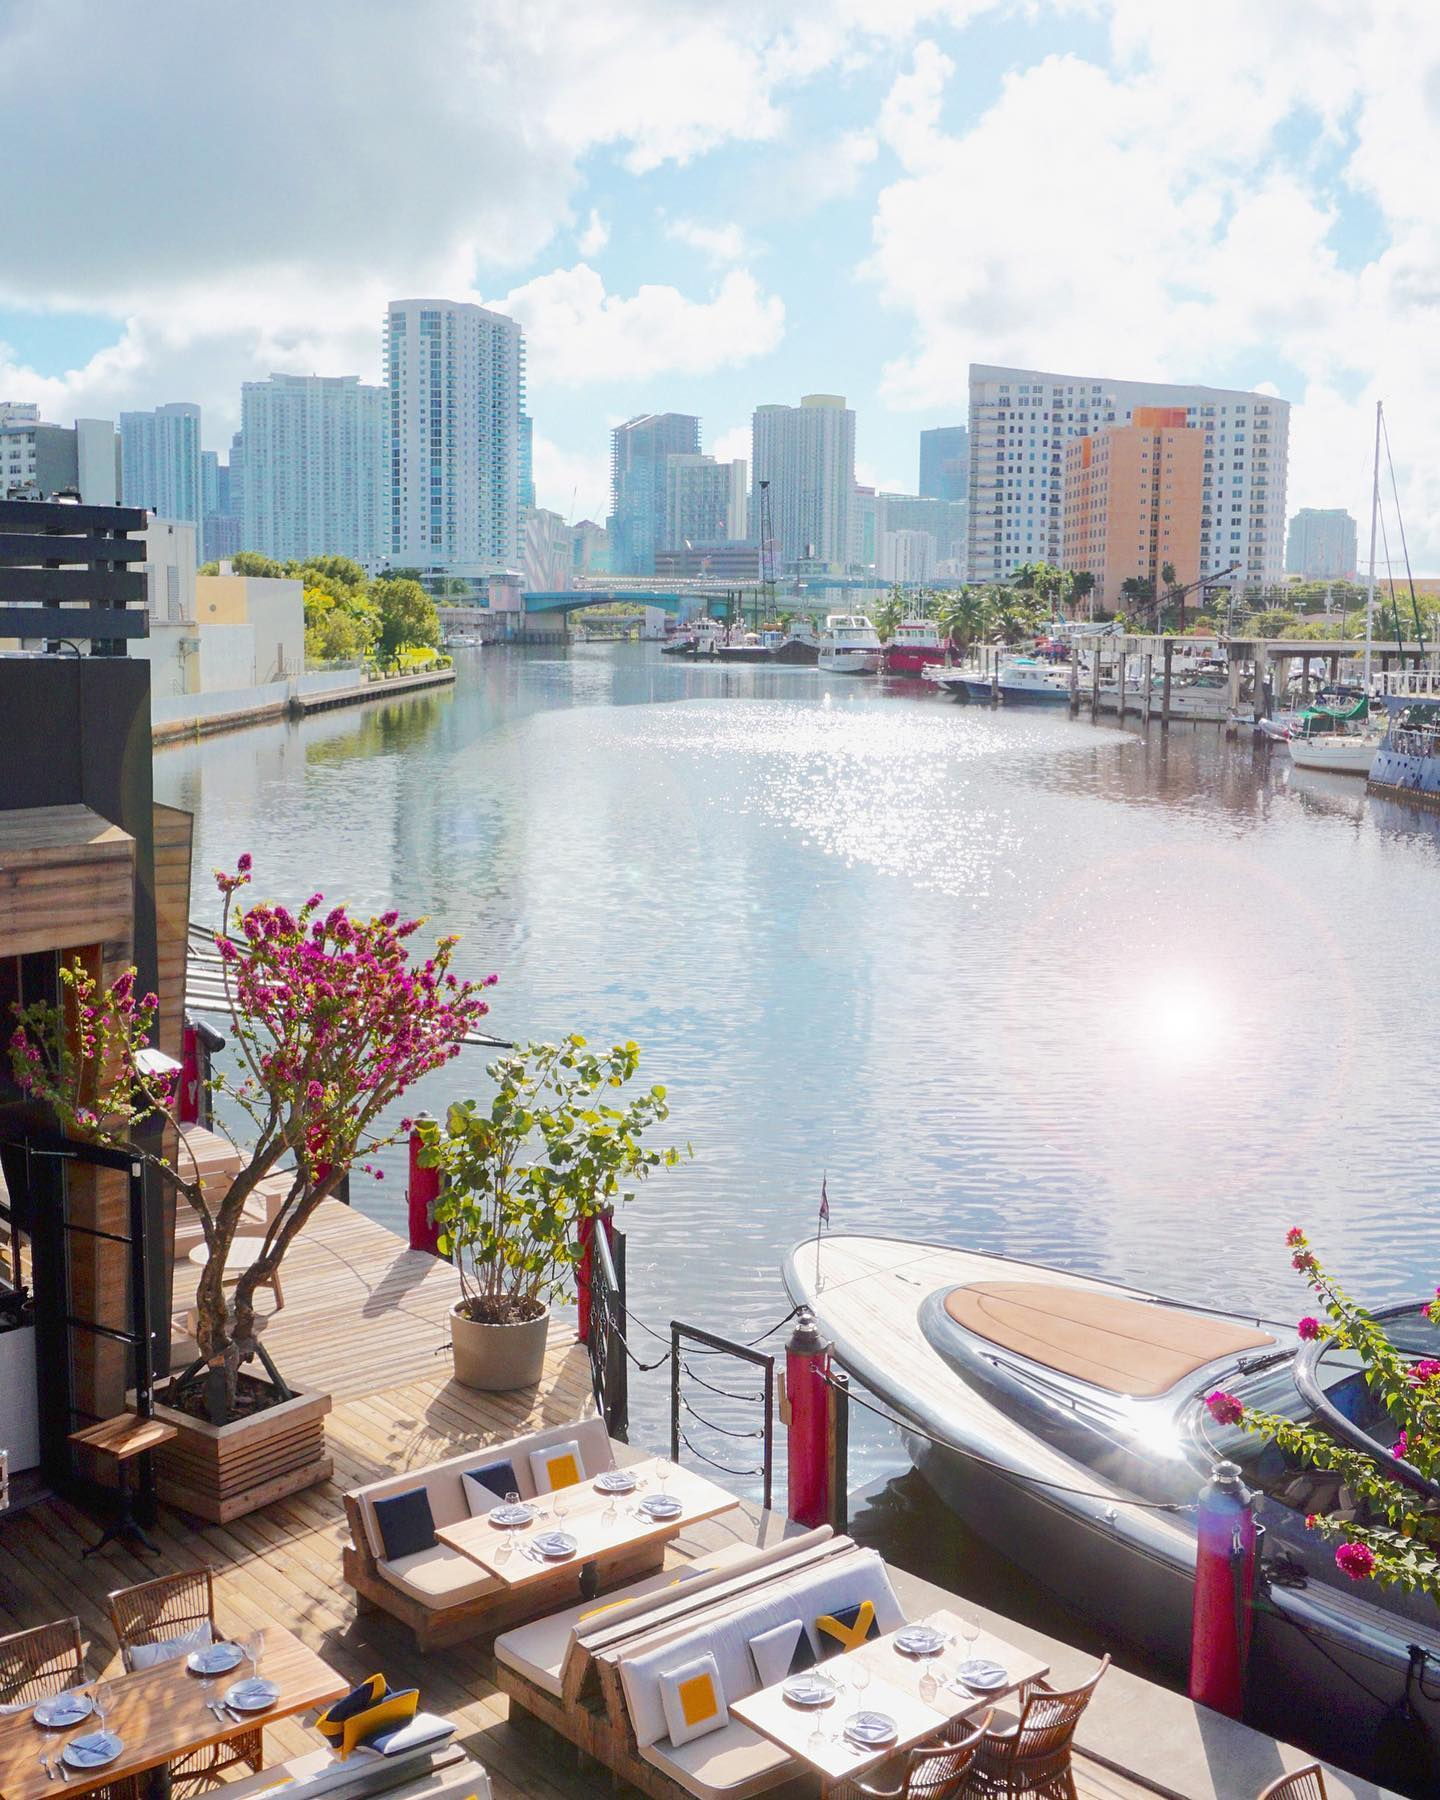 Best Miami Brunch Spot by the water. Seaspice on the Miami River